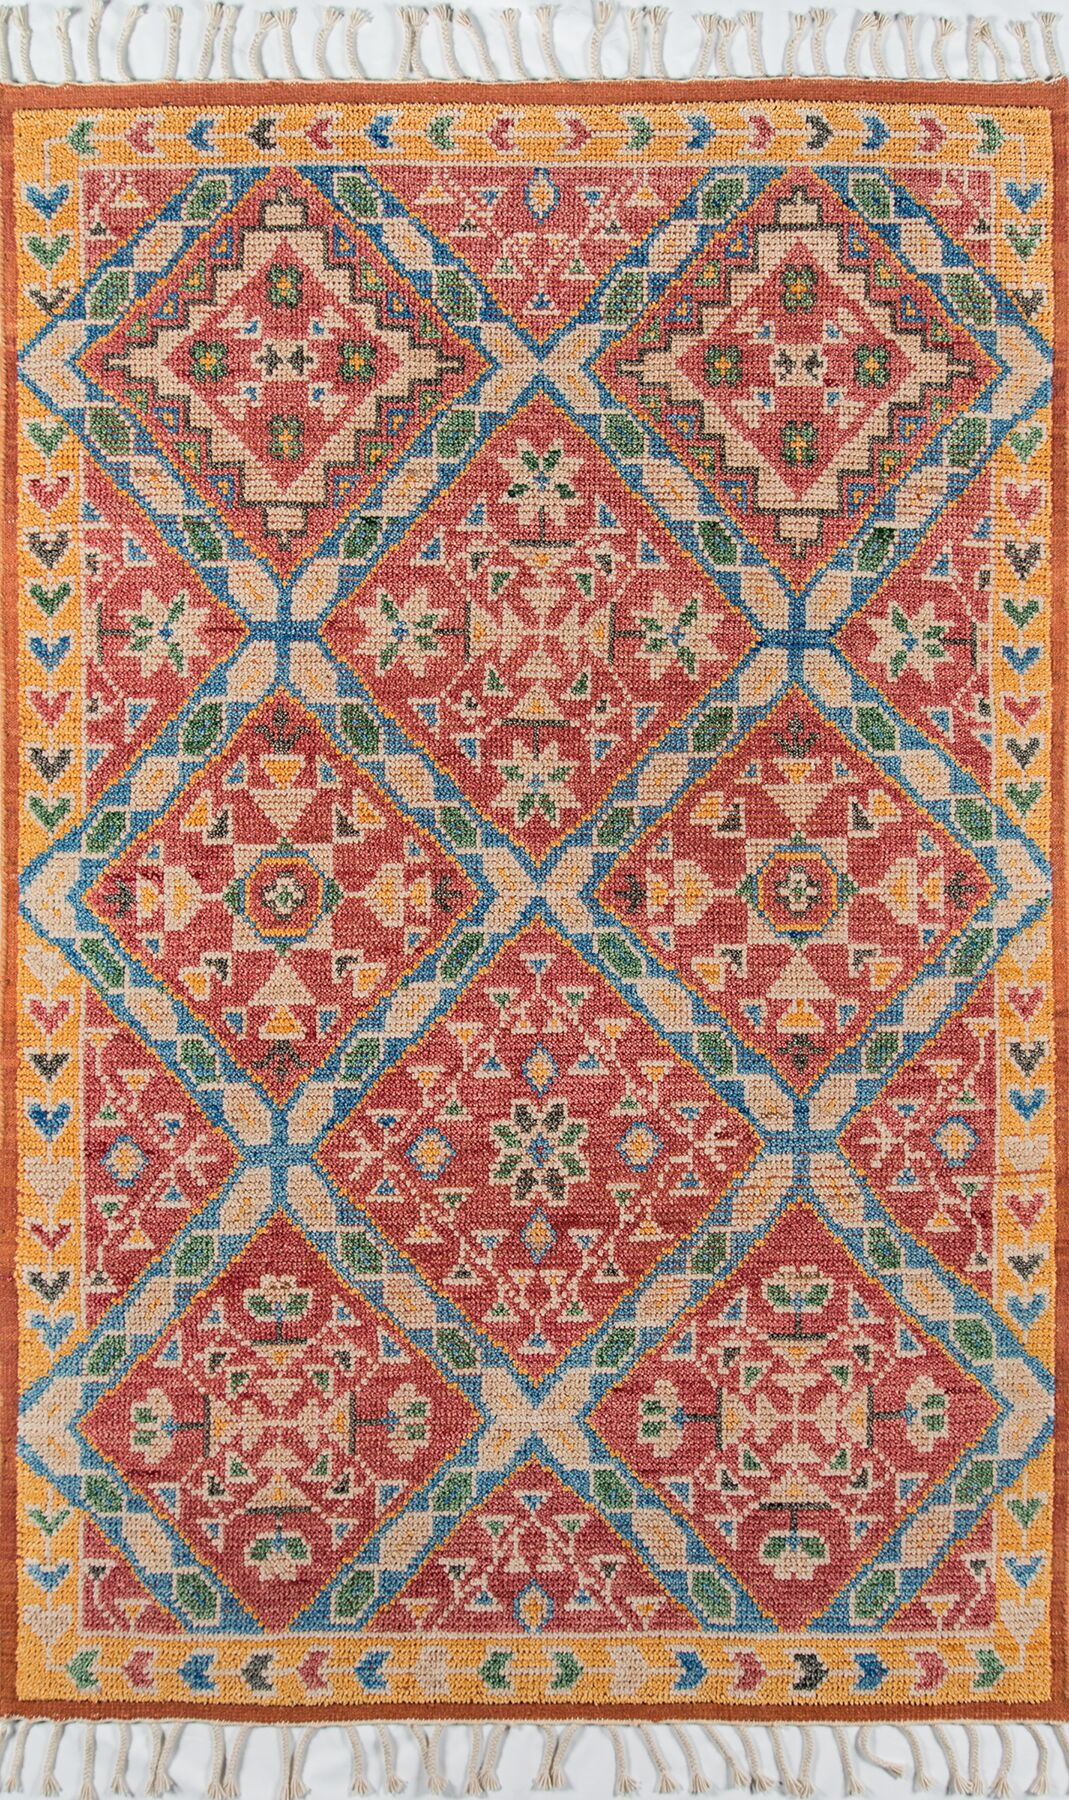 Chenoweth Hand-Knotted Wool Red/Yellow Area Rug Rug Size: Rectangle 8' X 11'